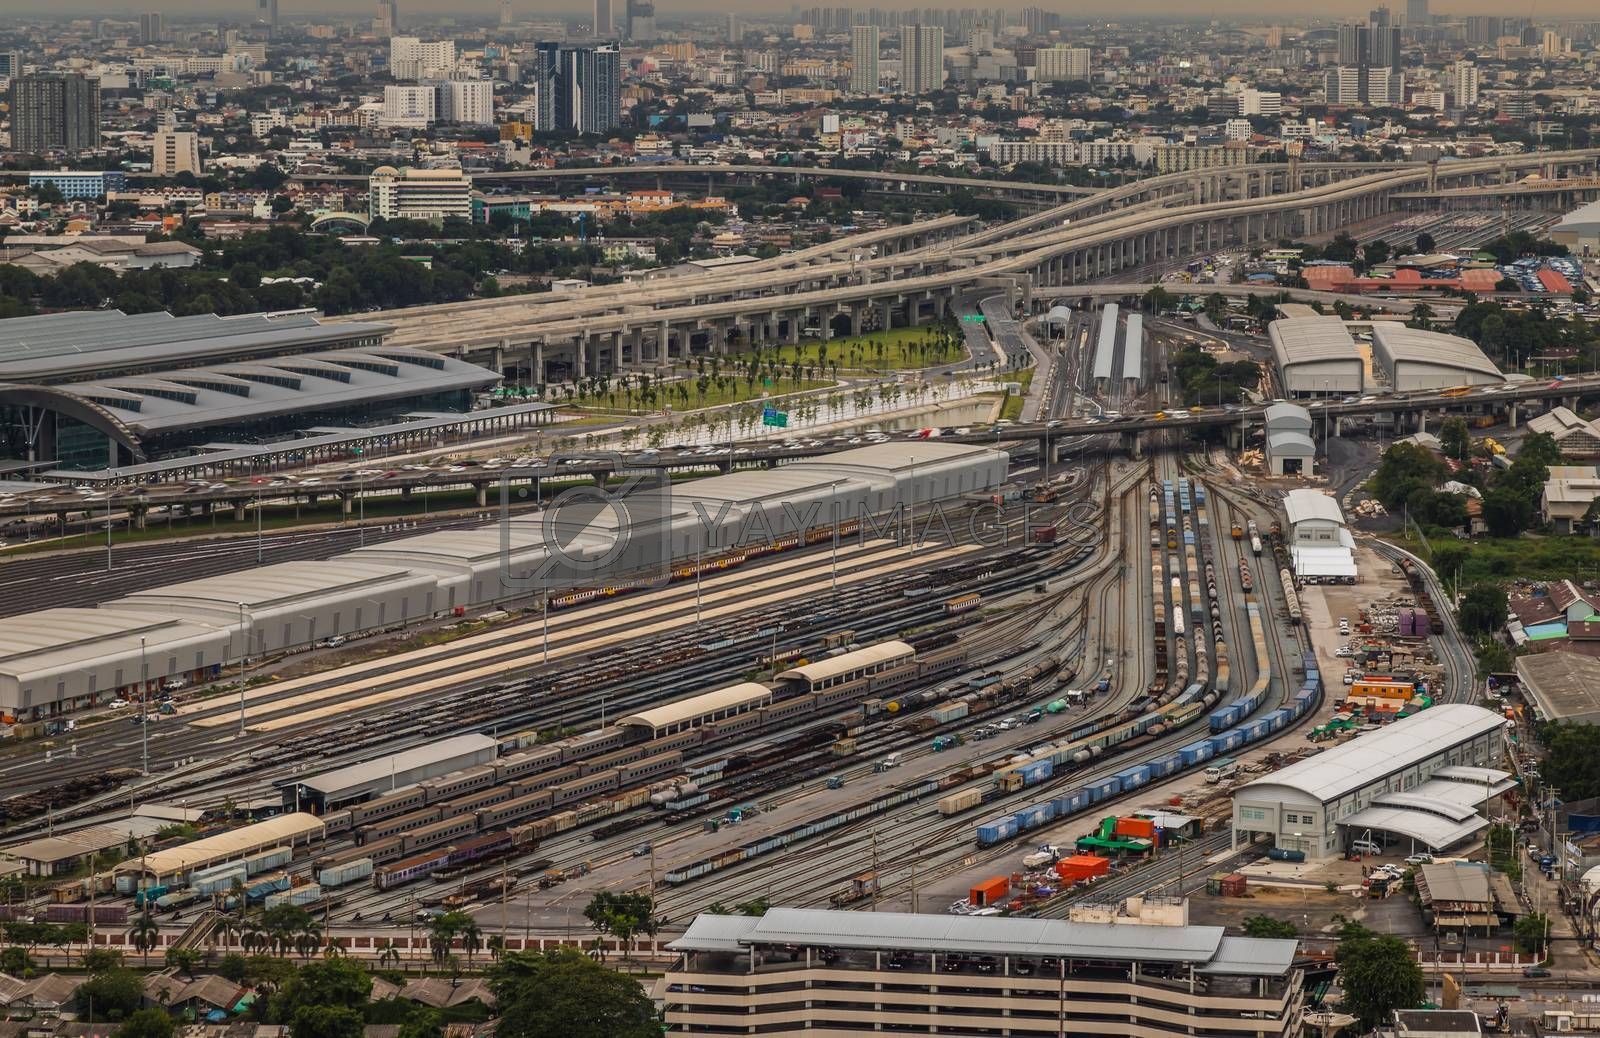 Aerial view of Bang Sue central station. by tosirikul